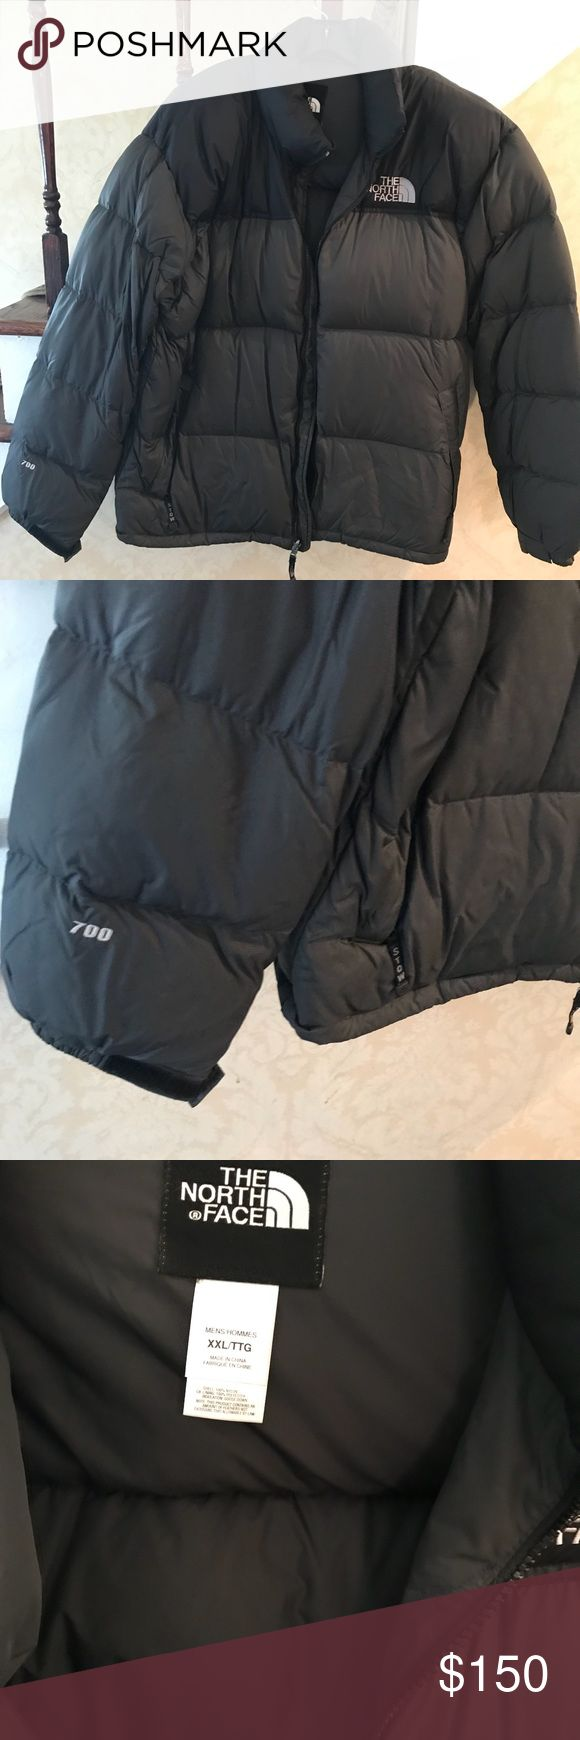 North face down jacket North face men's down jacket 700 fill preworn good condition. Size xxl but fits xl as well . Charcoal gray and black . North Face Jackets & Coats Puffers